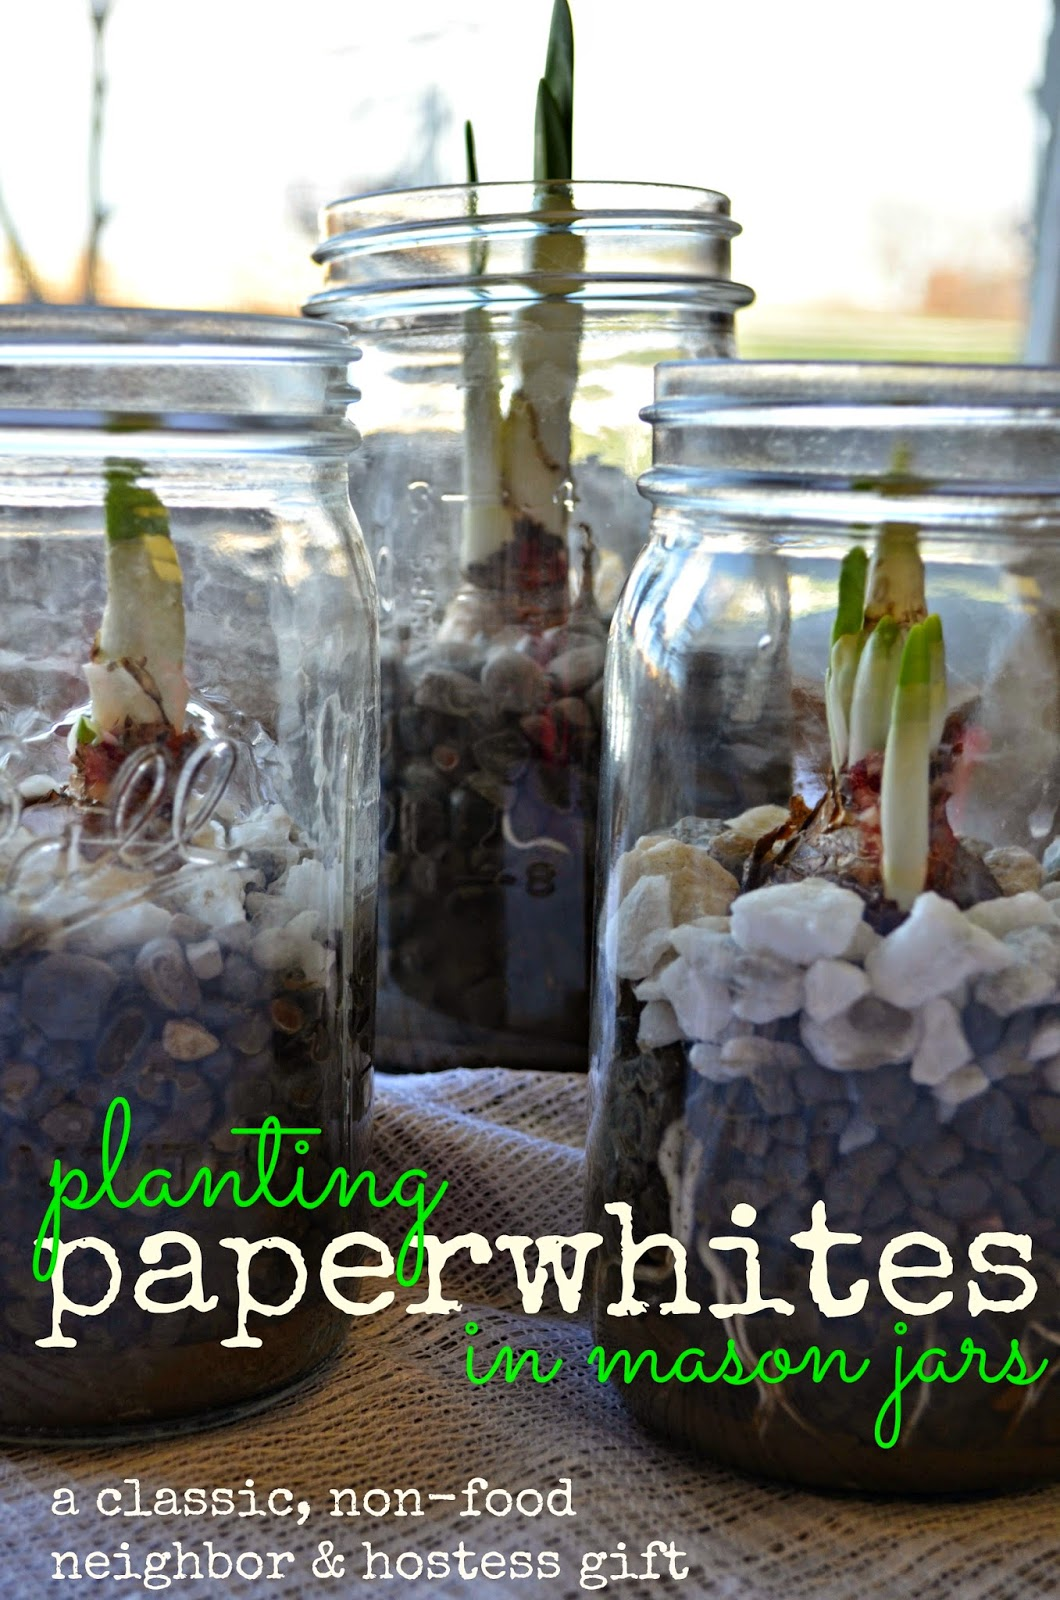 Neighbor Gift Idea: Paperwhites planted in Mason Jars